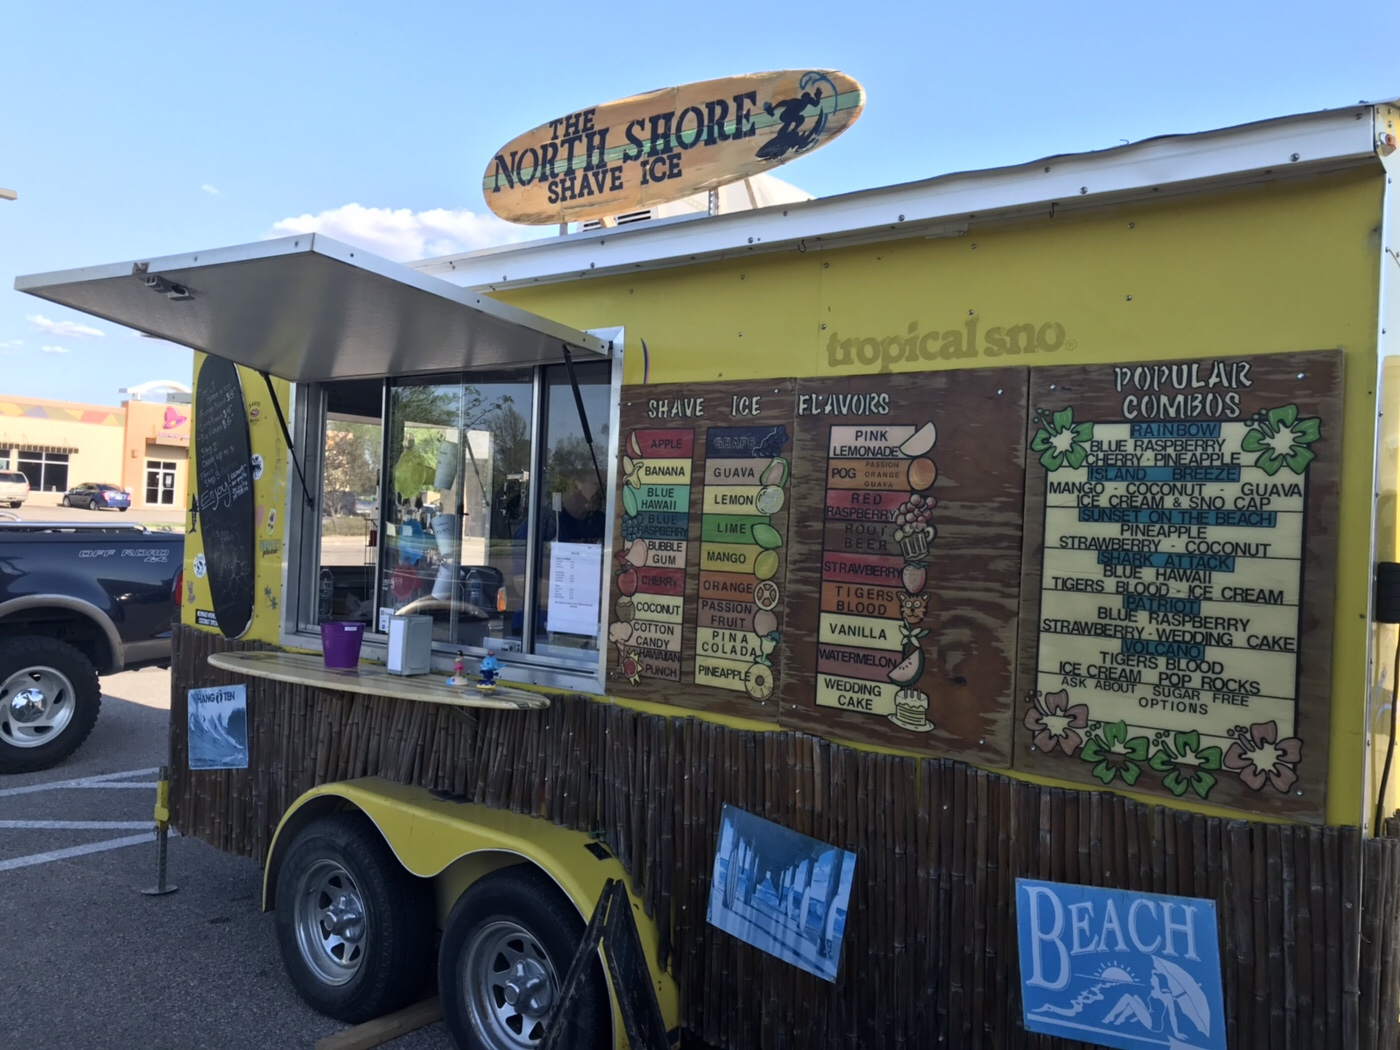 The North Shore Shave Ice